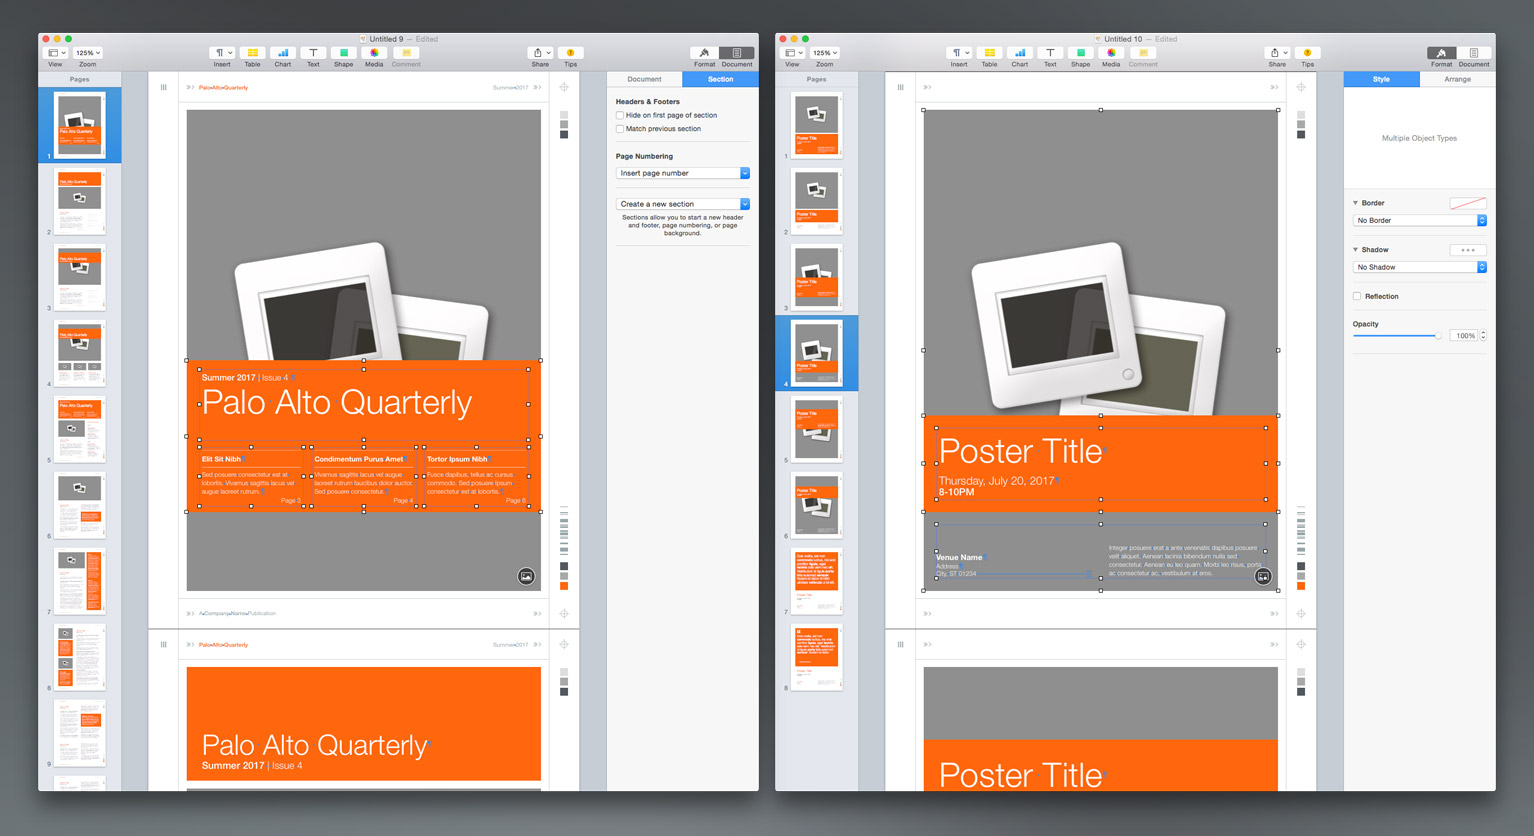 Shift-drag the pasted elements down to align with the bottom of the original orange accent.